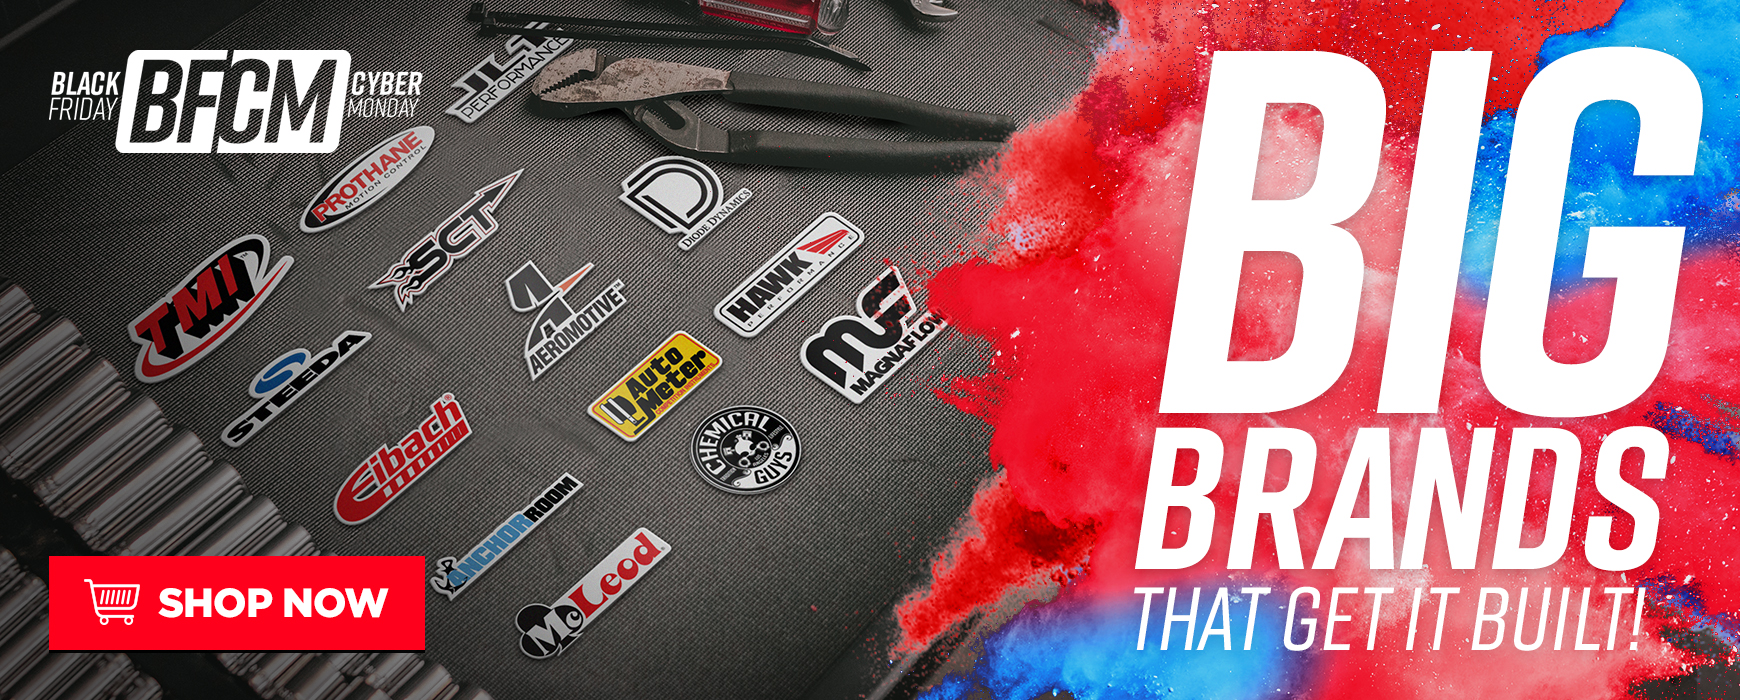 LMR Mustang BFCM Featured Brands